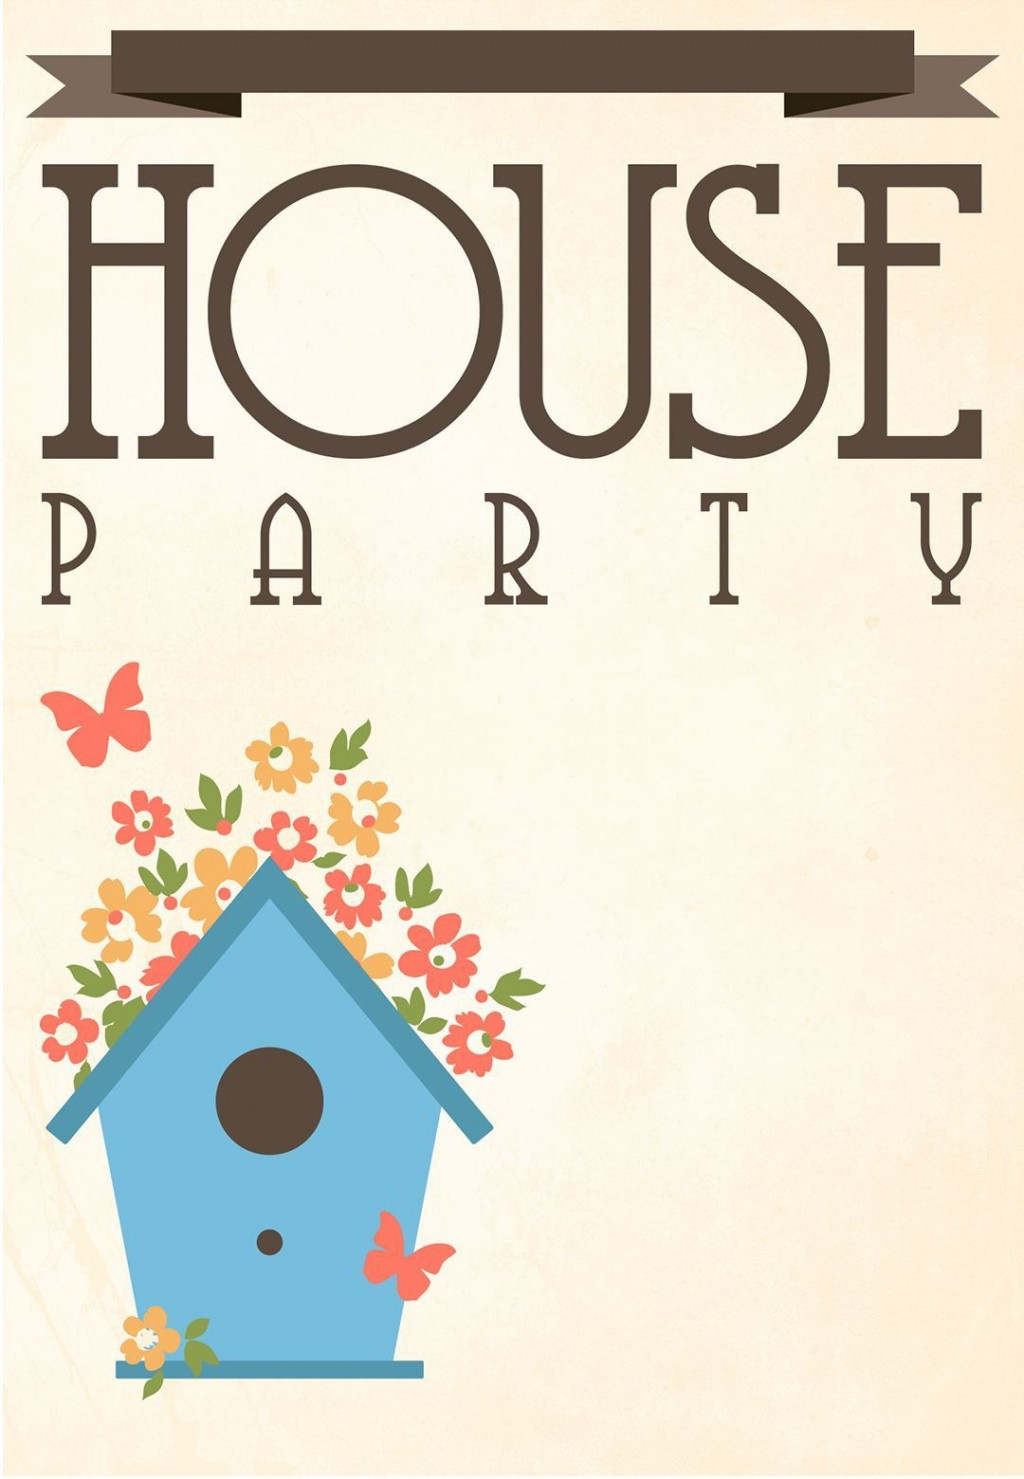 004 Rare Housewarming Party Invite Template Highest Clarity  Templates Invitation Maker EditableLarge